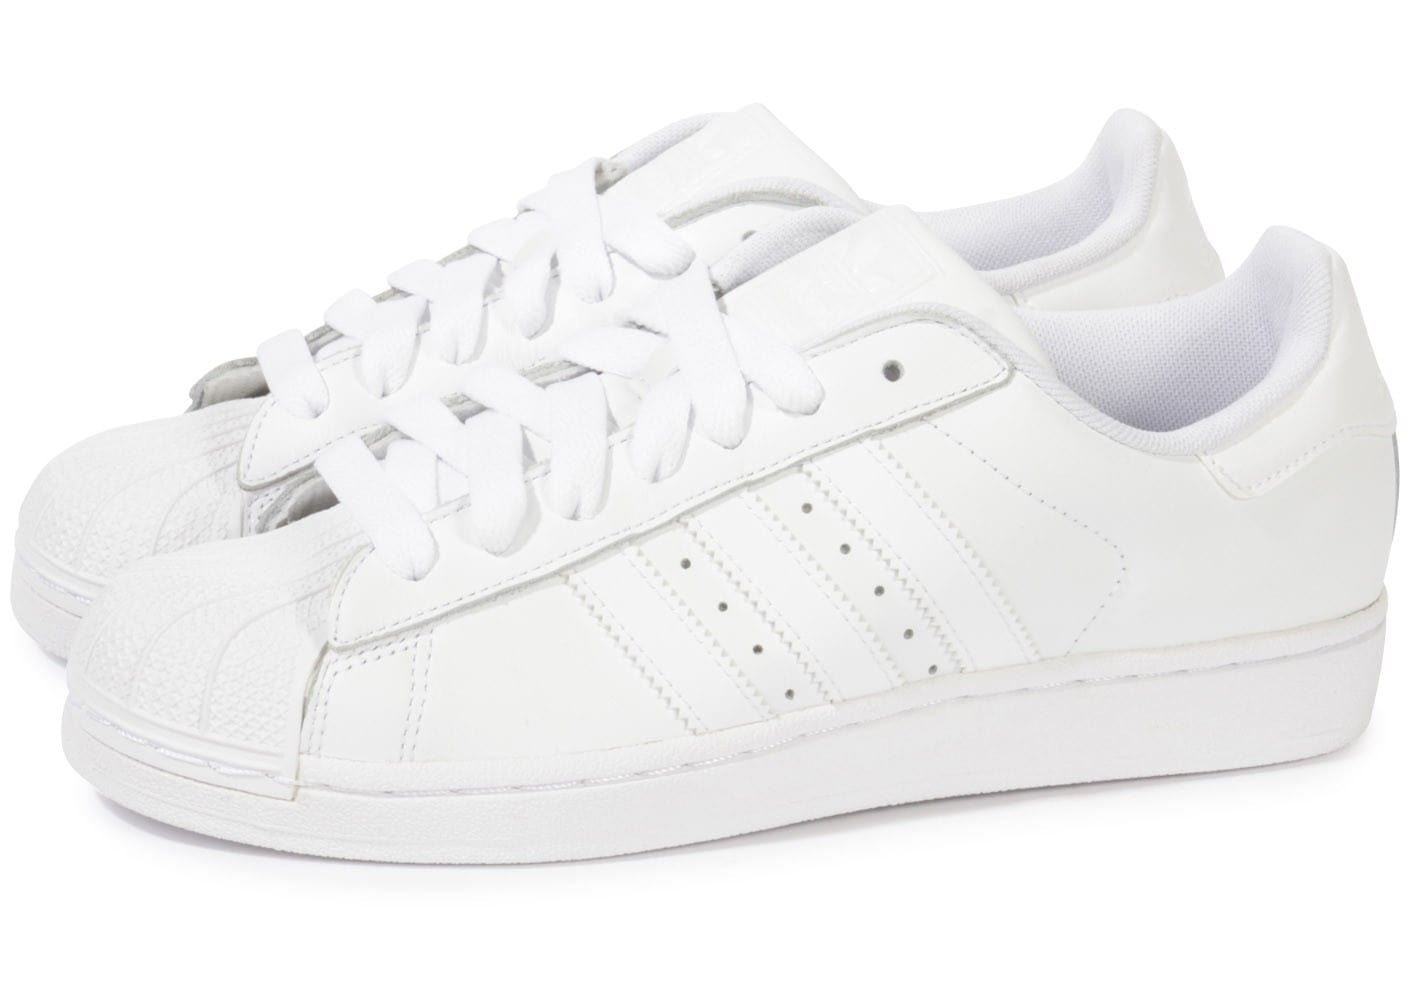 low priced a54c7 a1f1c Adidas Superstar Ii Homme Cuir Fête De No l Bleu Blanc Haute Qualité - Adidas  Superstar Ii ... ... Adidas Unisex Originals Superstar II Blanc Or G50962  ...